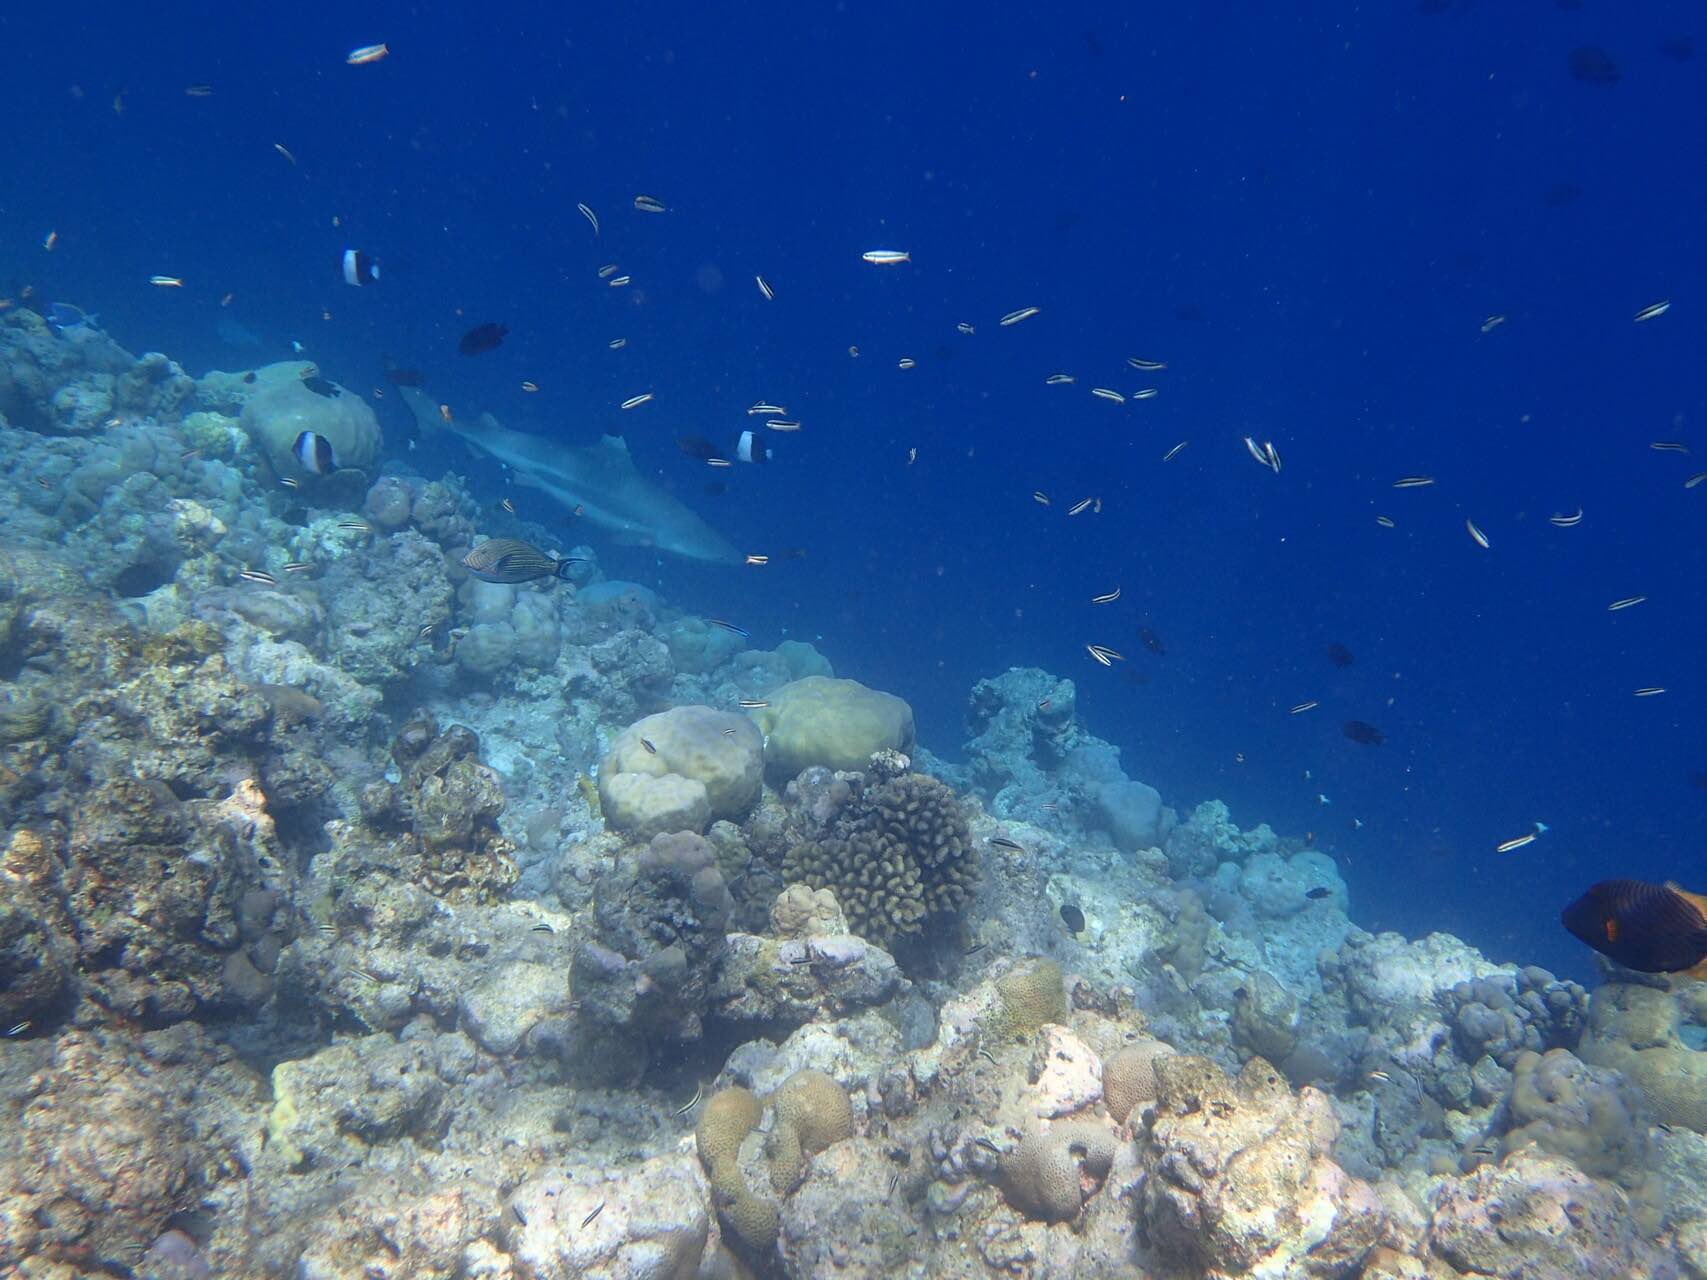 maldives-oblu-by-atmosphere-at-helengeli-reef-shark-fish-holiday-review-feedback-invite-to-paradise-quentin-kate-hulm.jpg